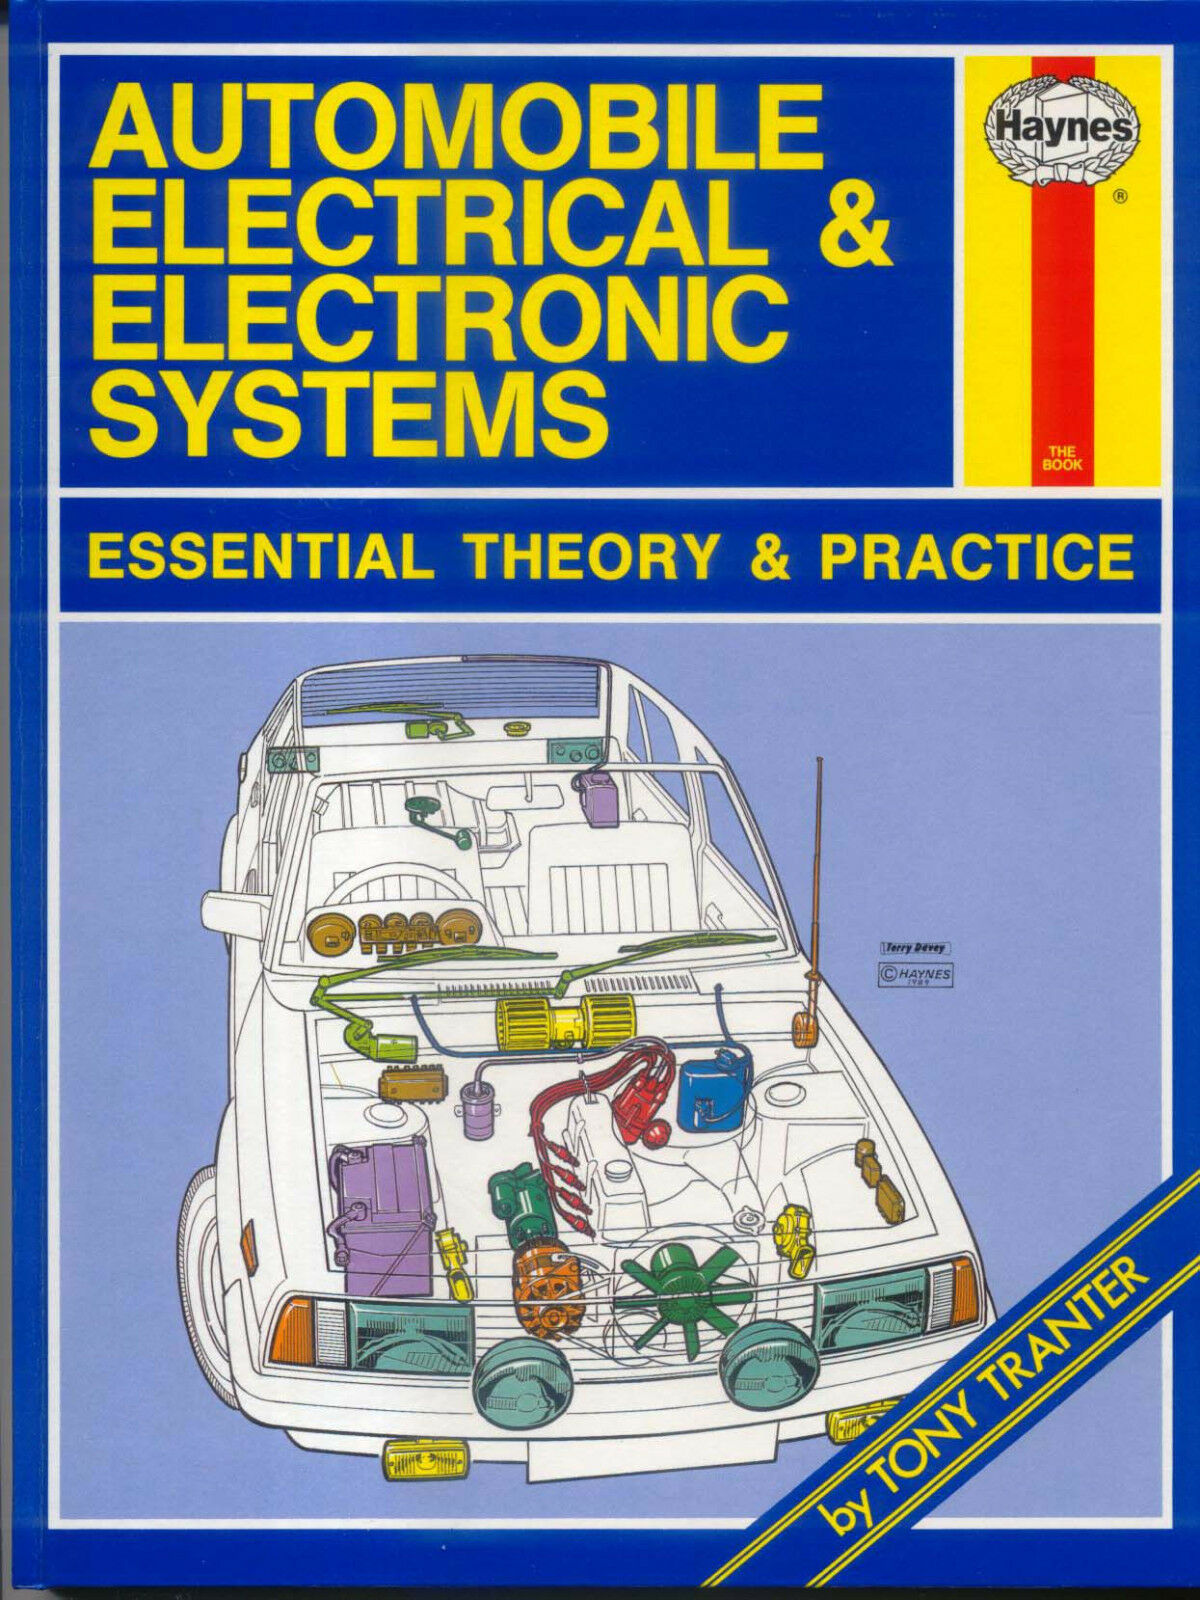 Automotive electrical electronic systems haynes 1990 theory and automotive electrical electronic systems haynes 1990 theory and practice 1 of 1only 1 available publicscrutiny Image collections